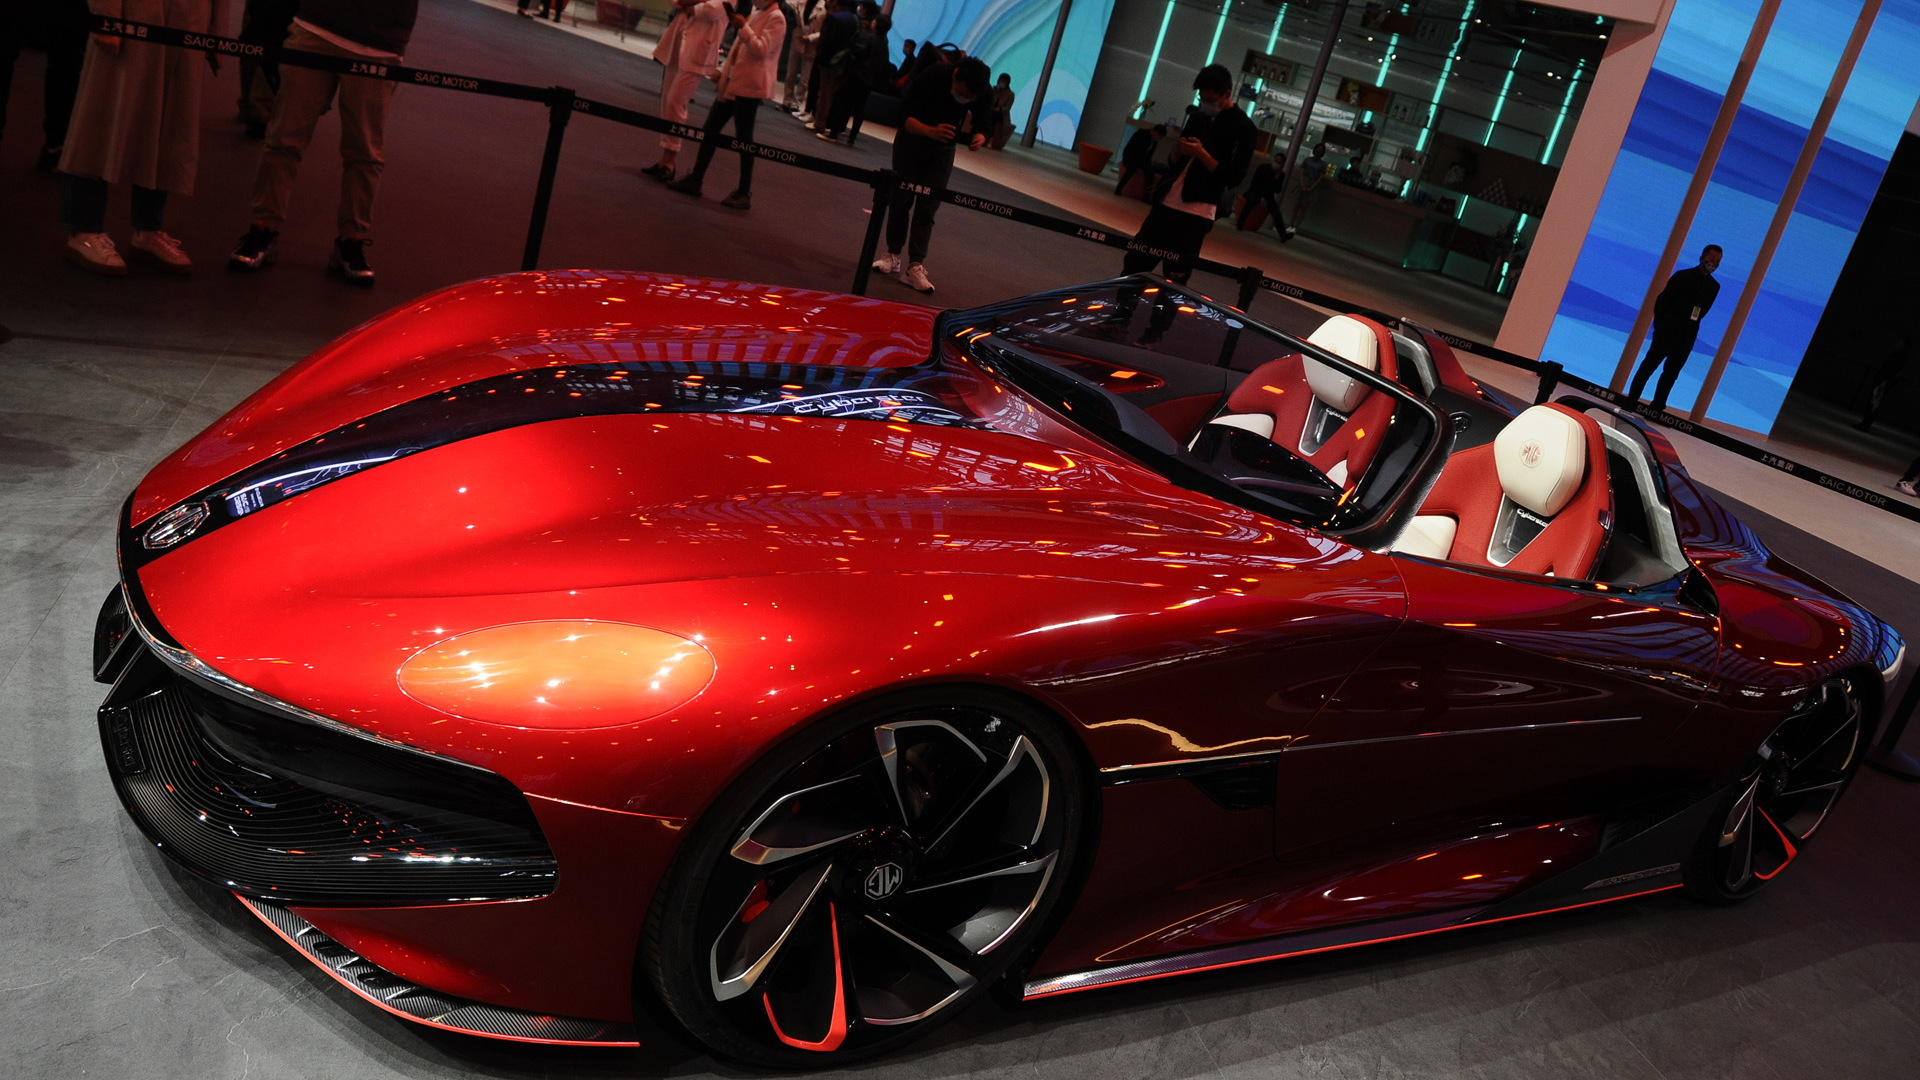 MG Cyberster concept - 2021 Shanghai auto show